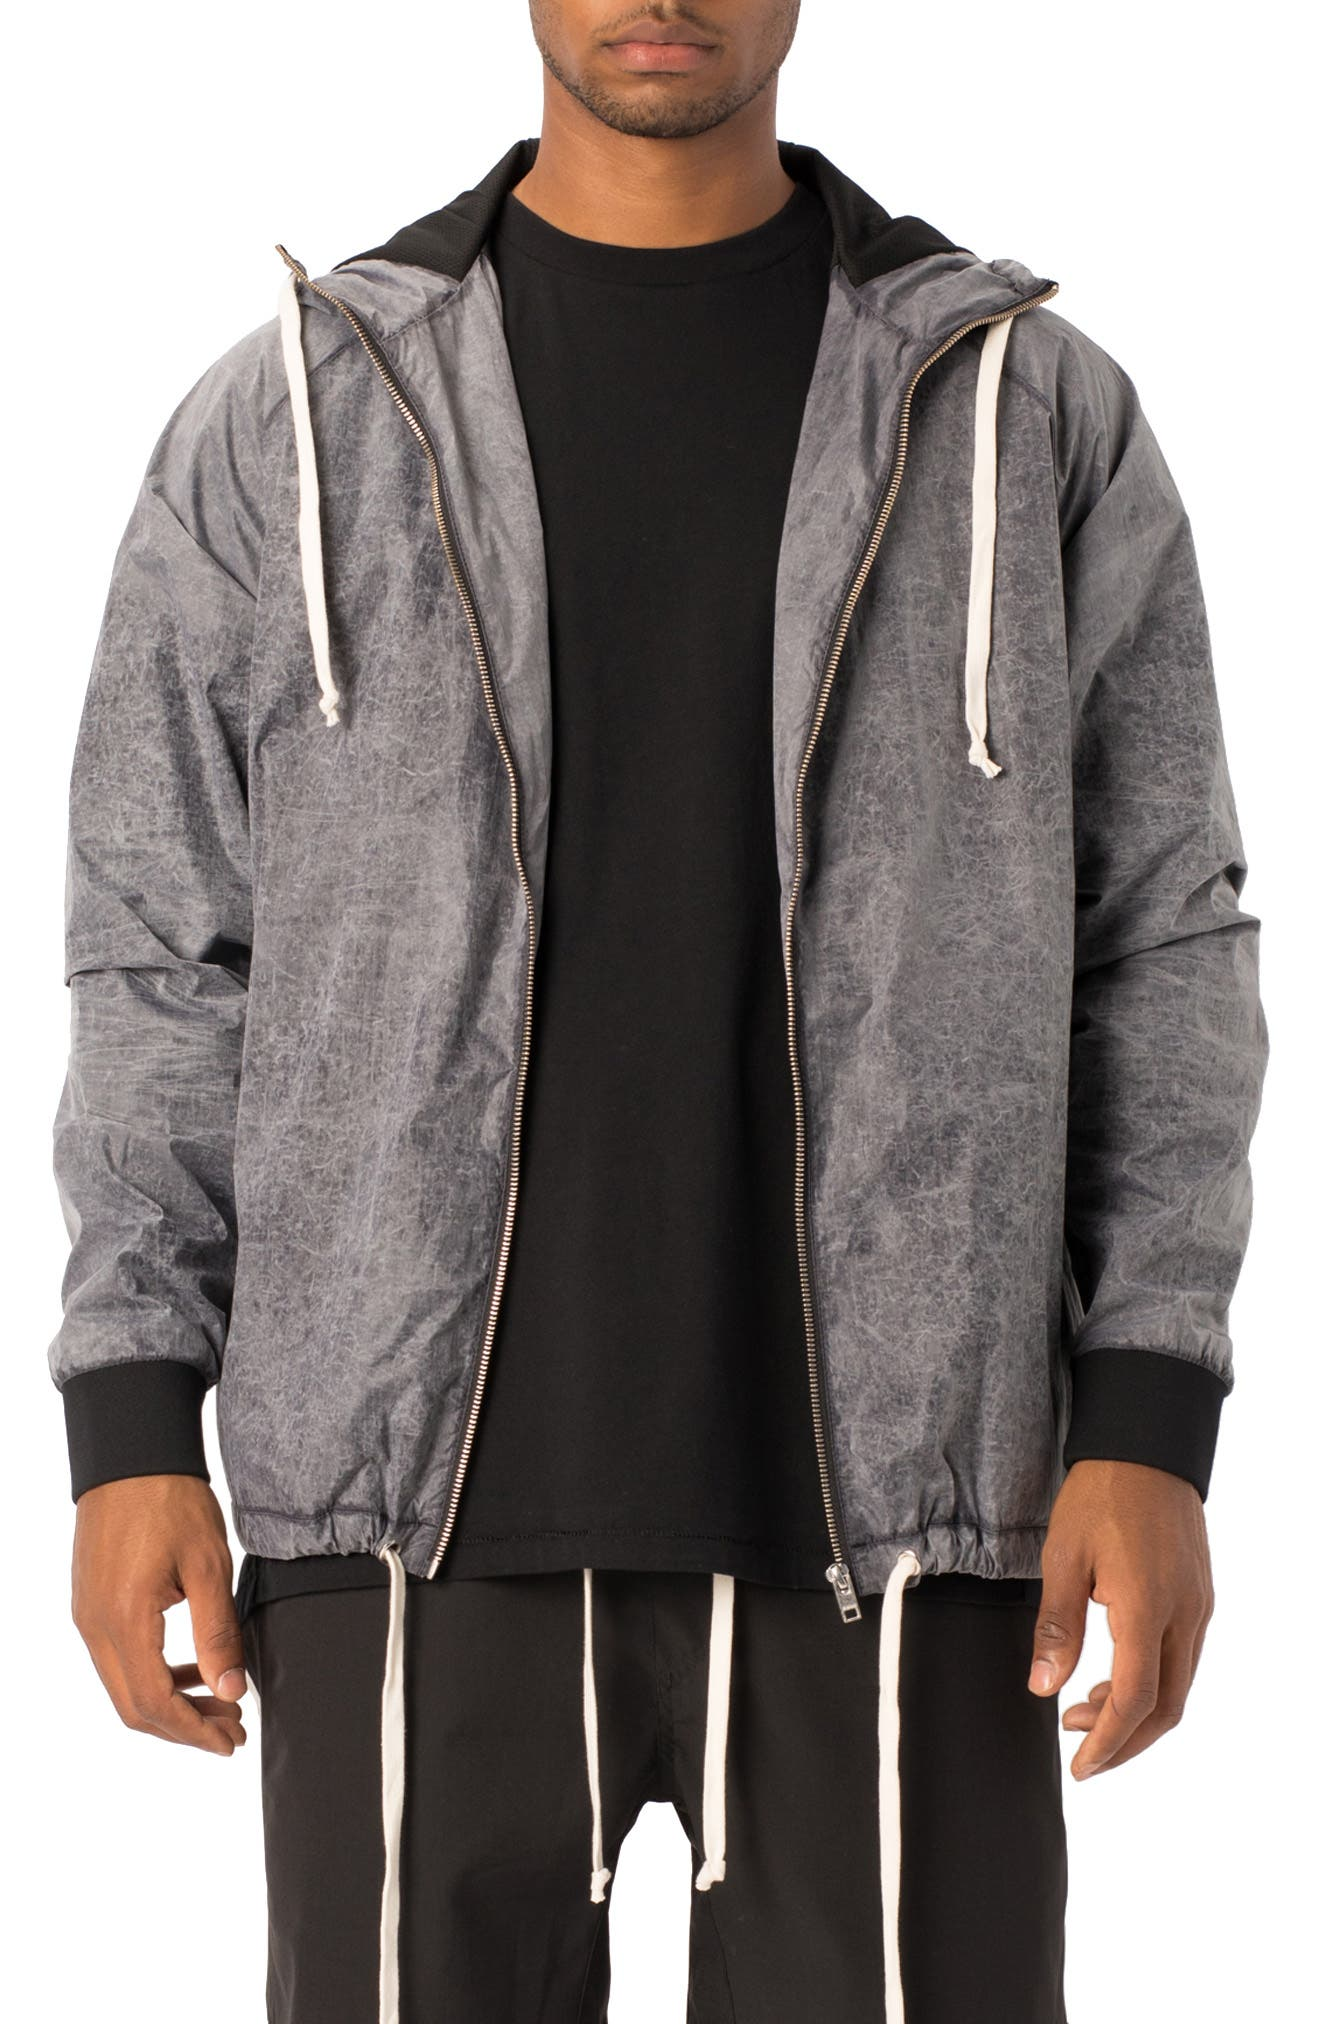 Storm Spray Hooded Jacket,                             Main thumbnail 1, color,                             SCRATCHED GREY